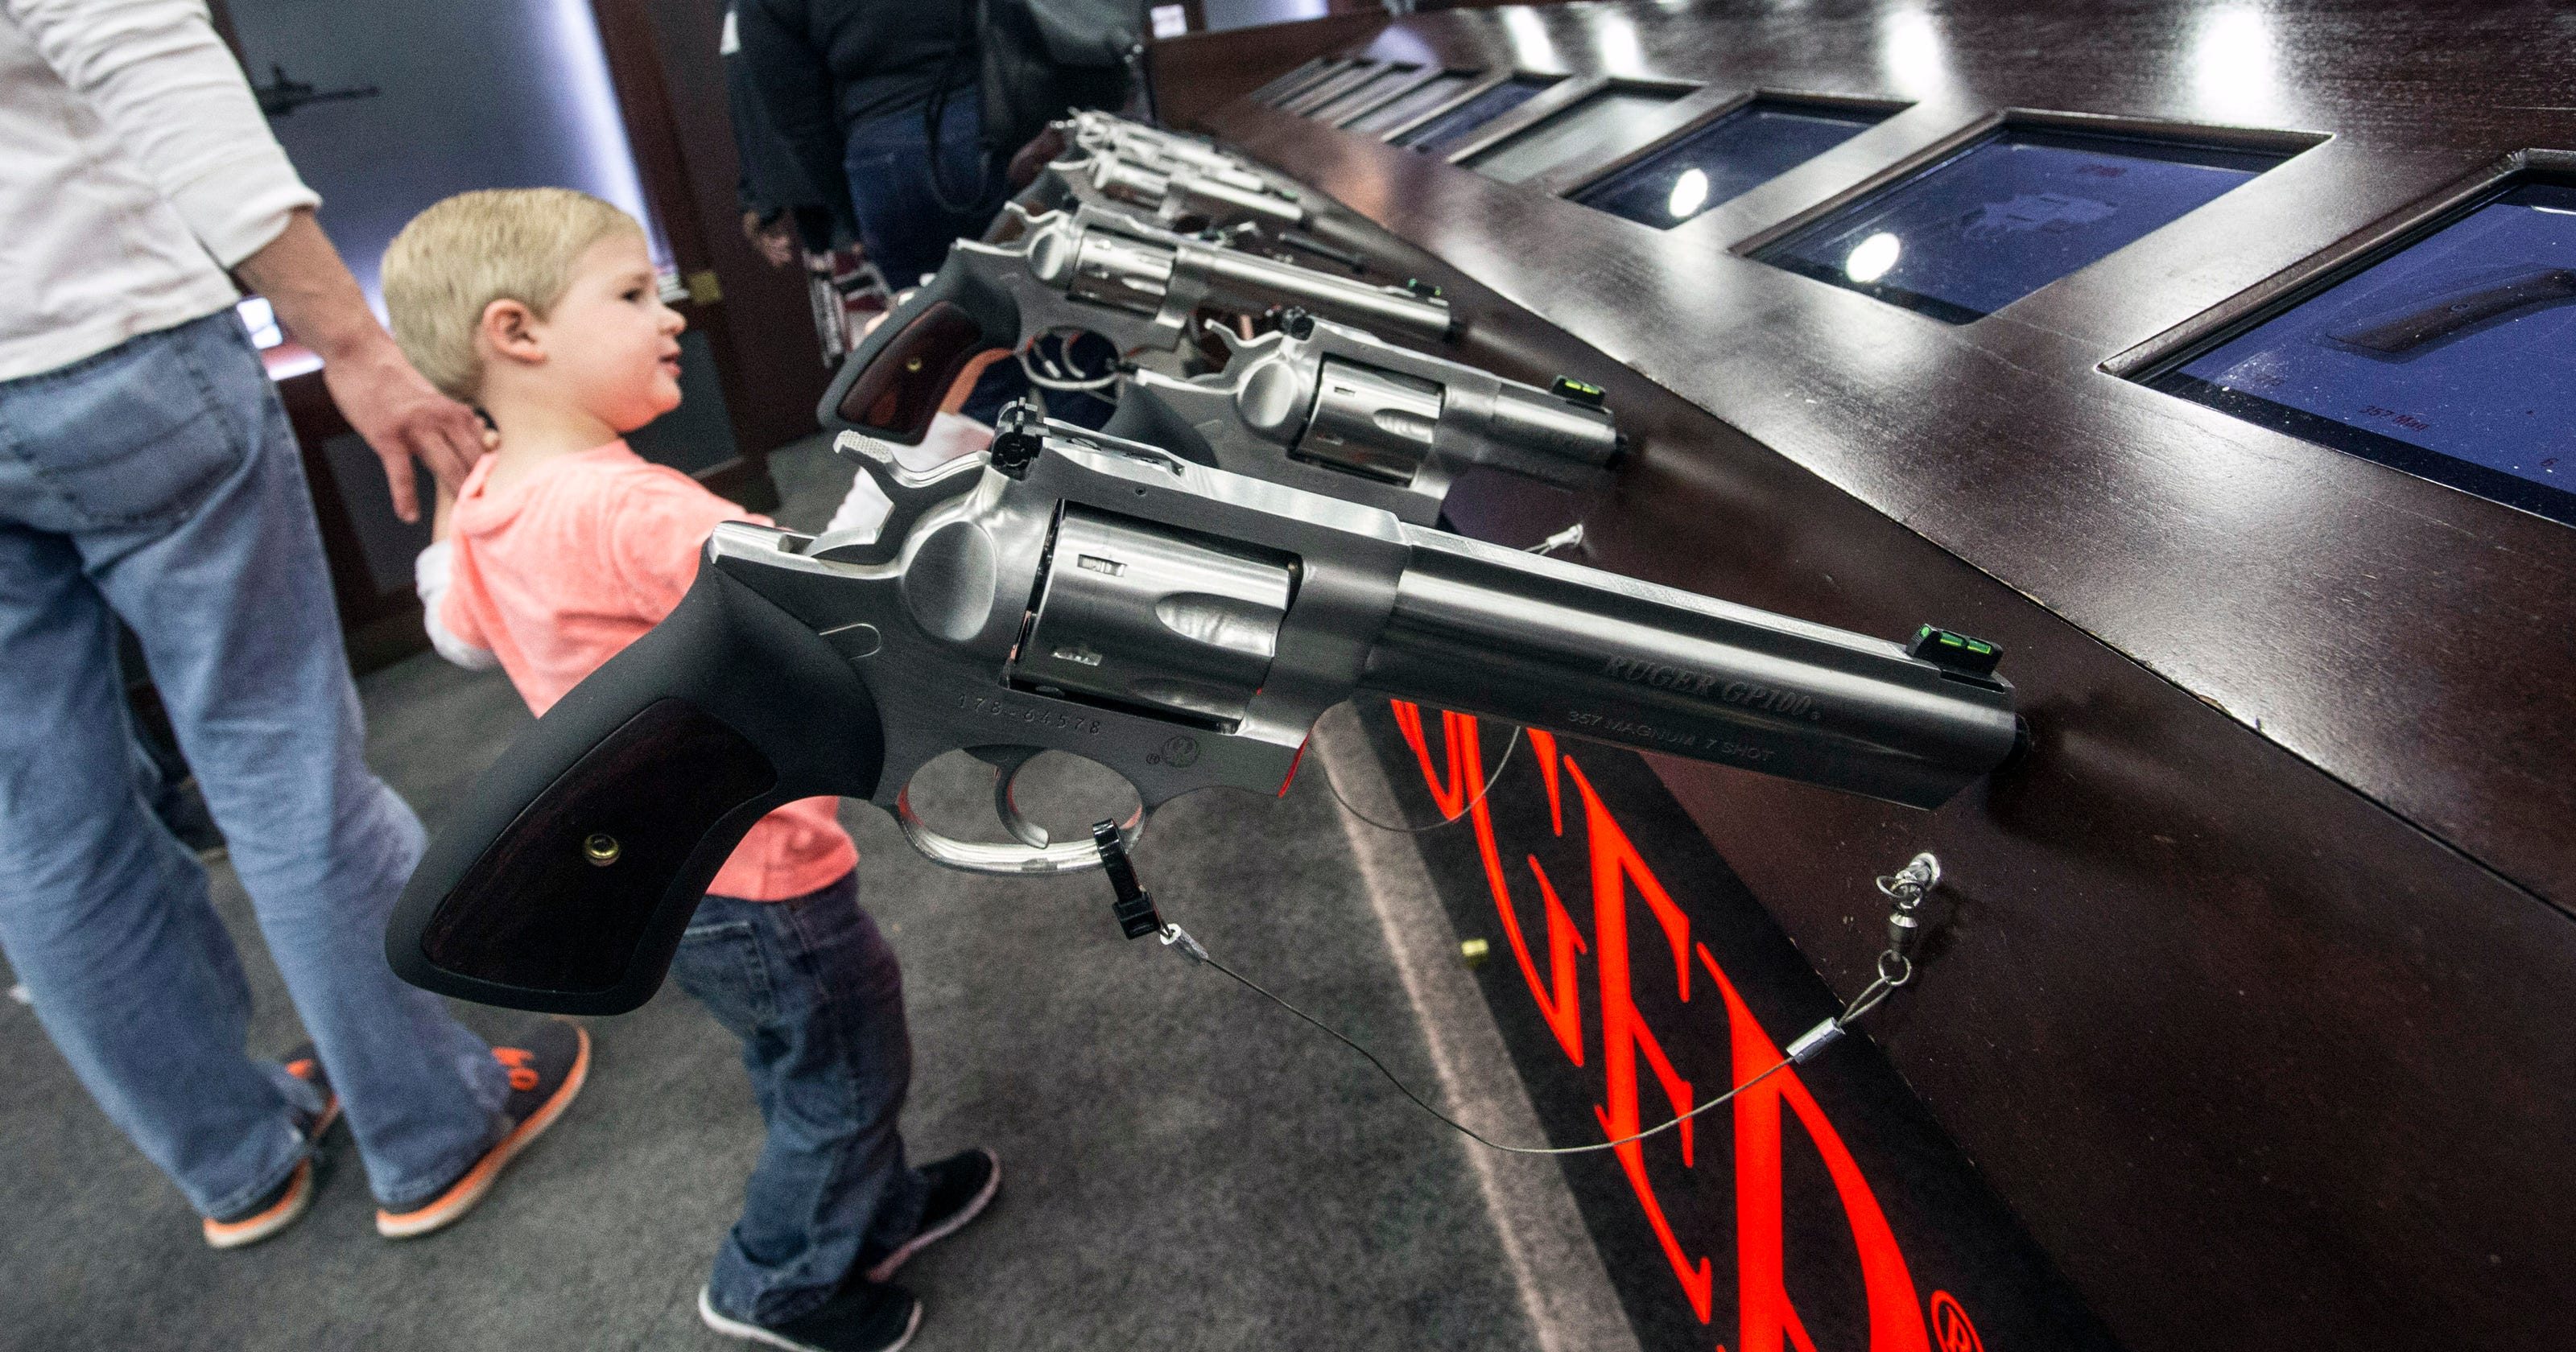 Kentucky's new concealed carry law: What it means for gun